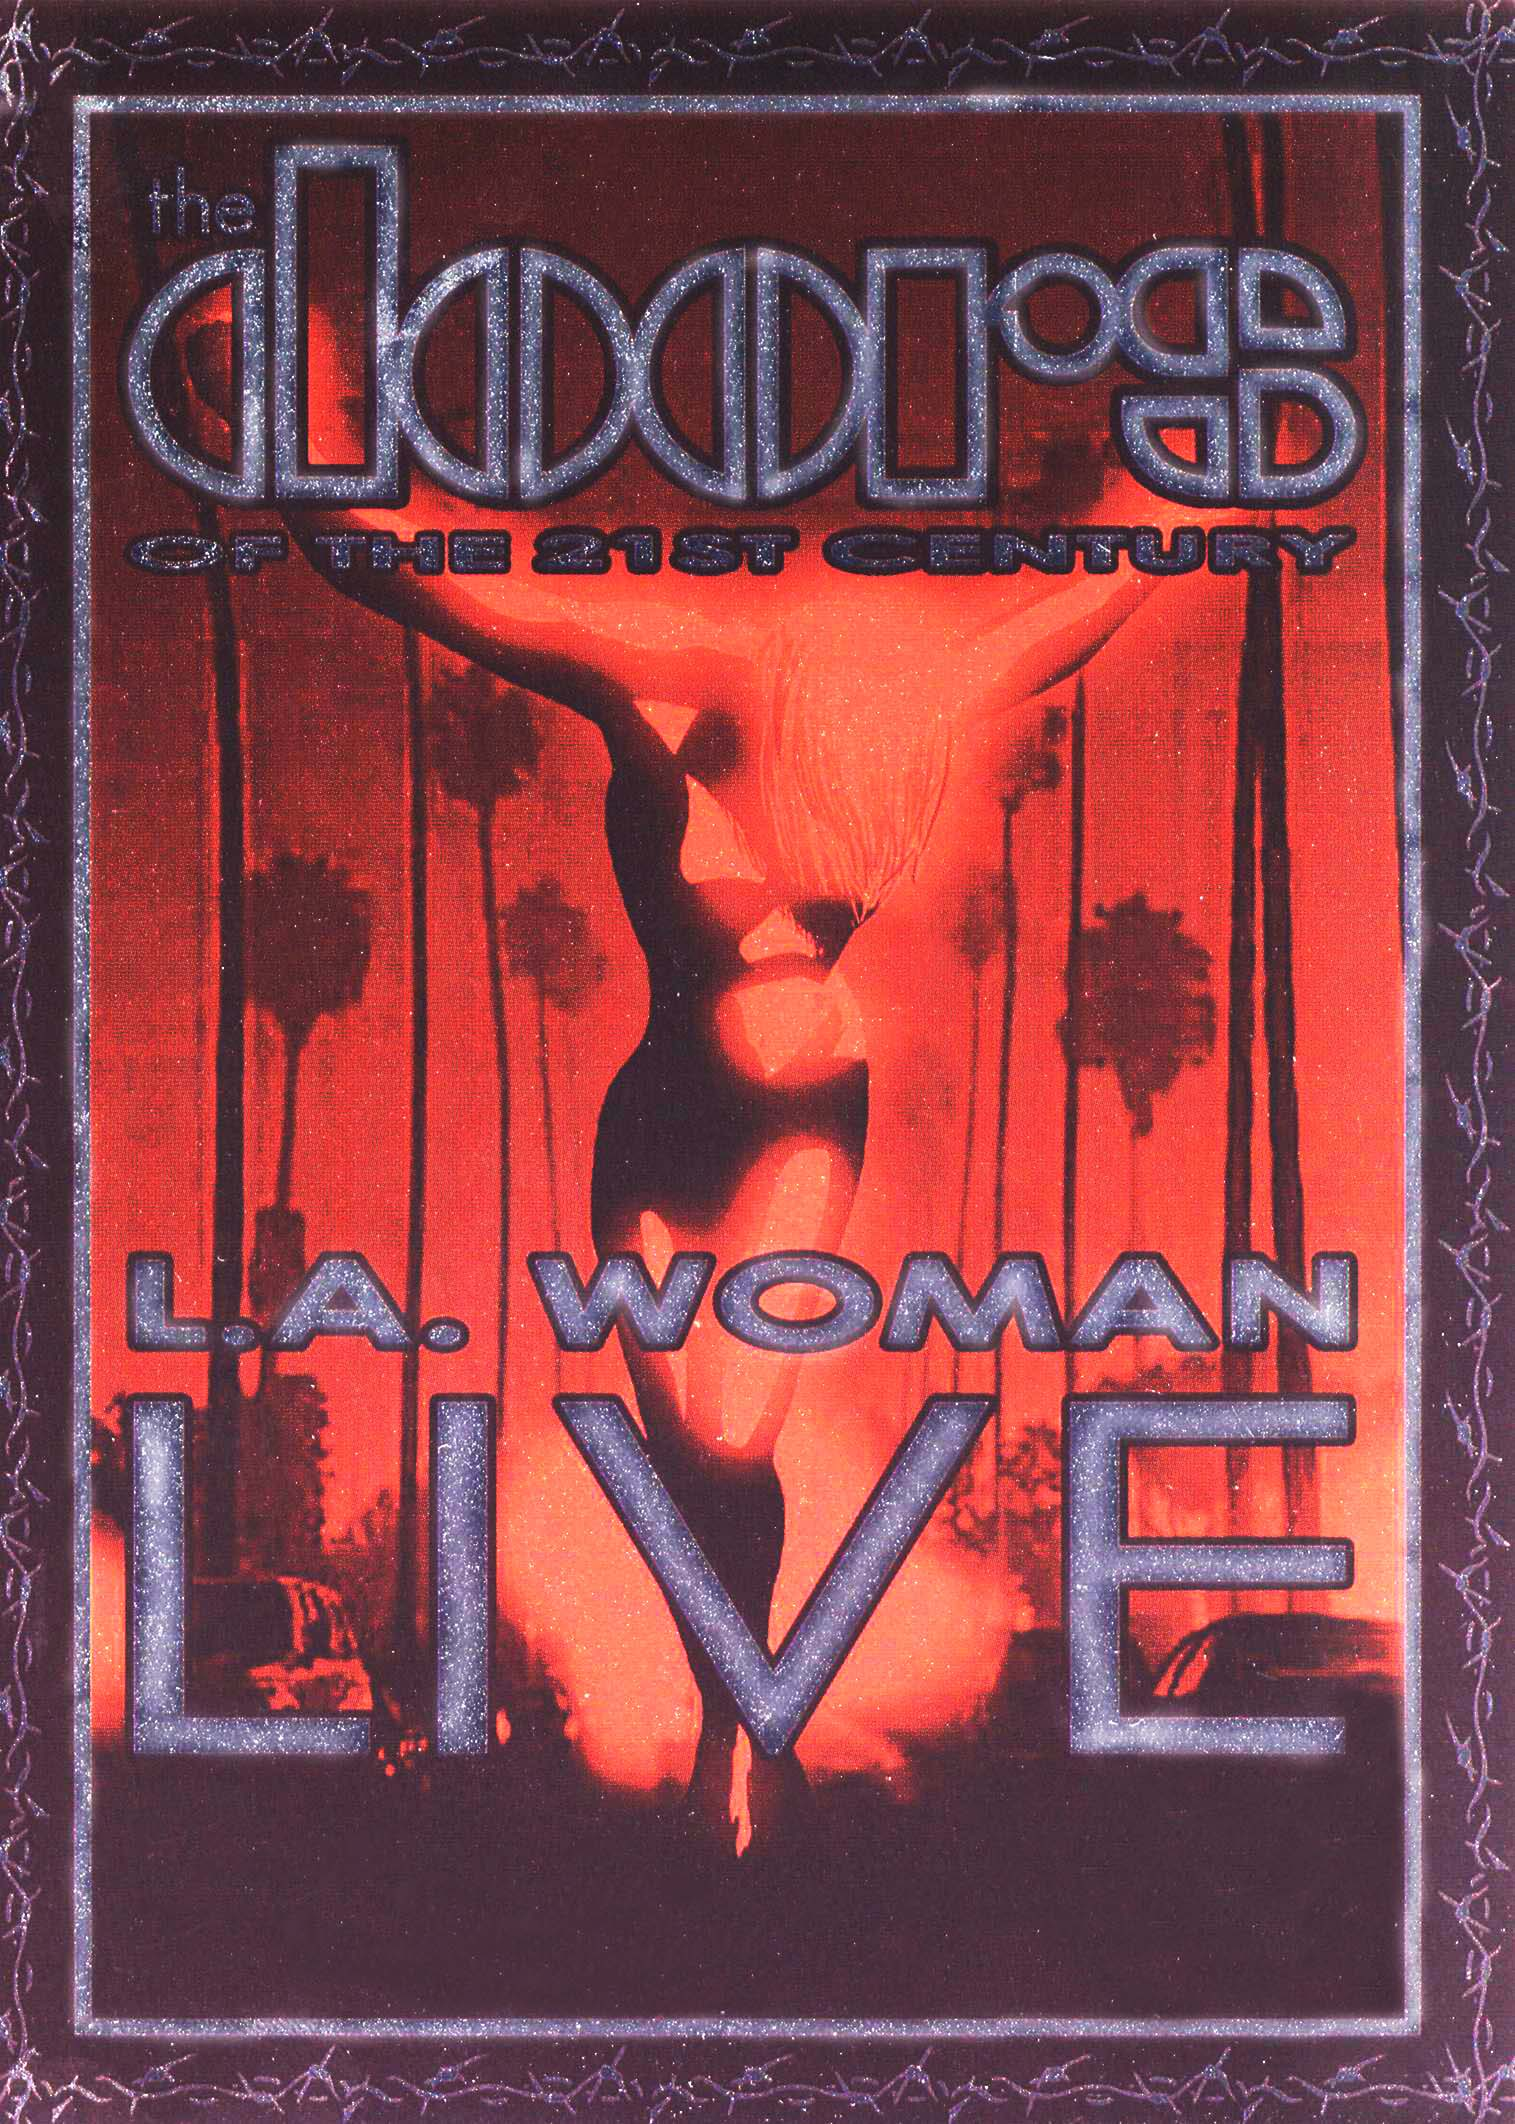 Doors of the 21st Century: L.A. Woman Live